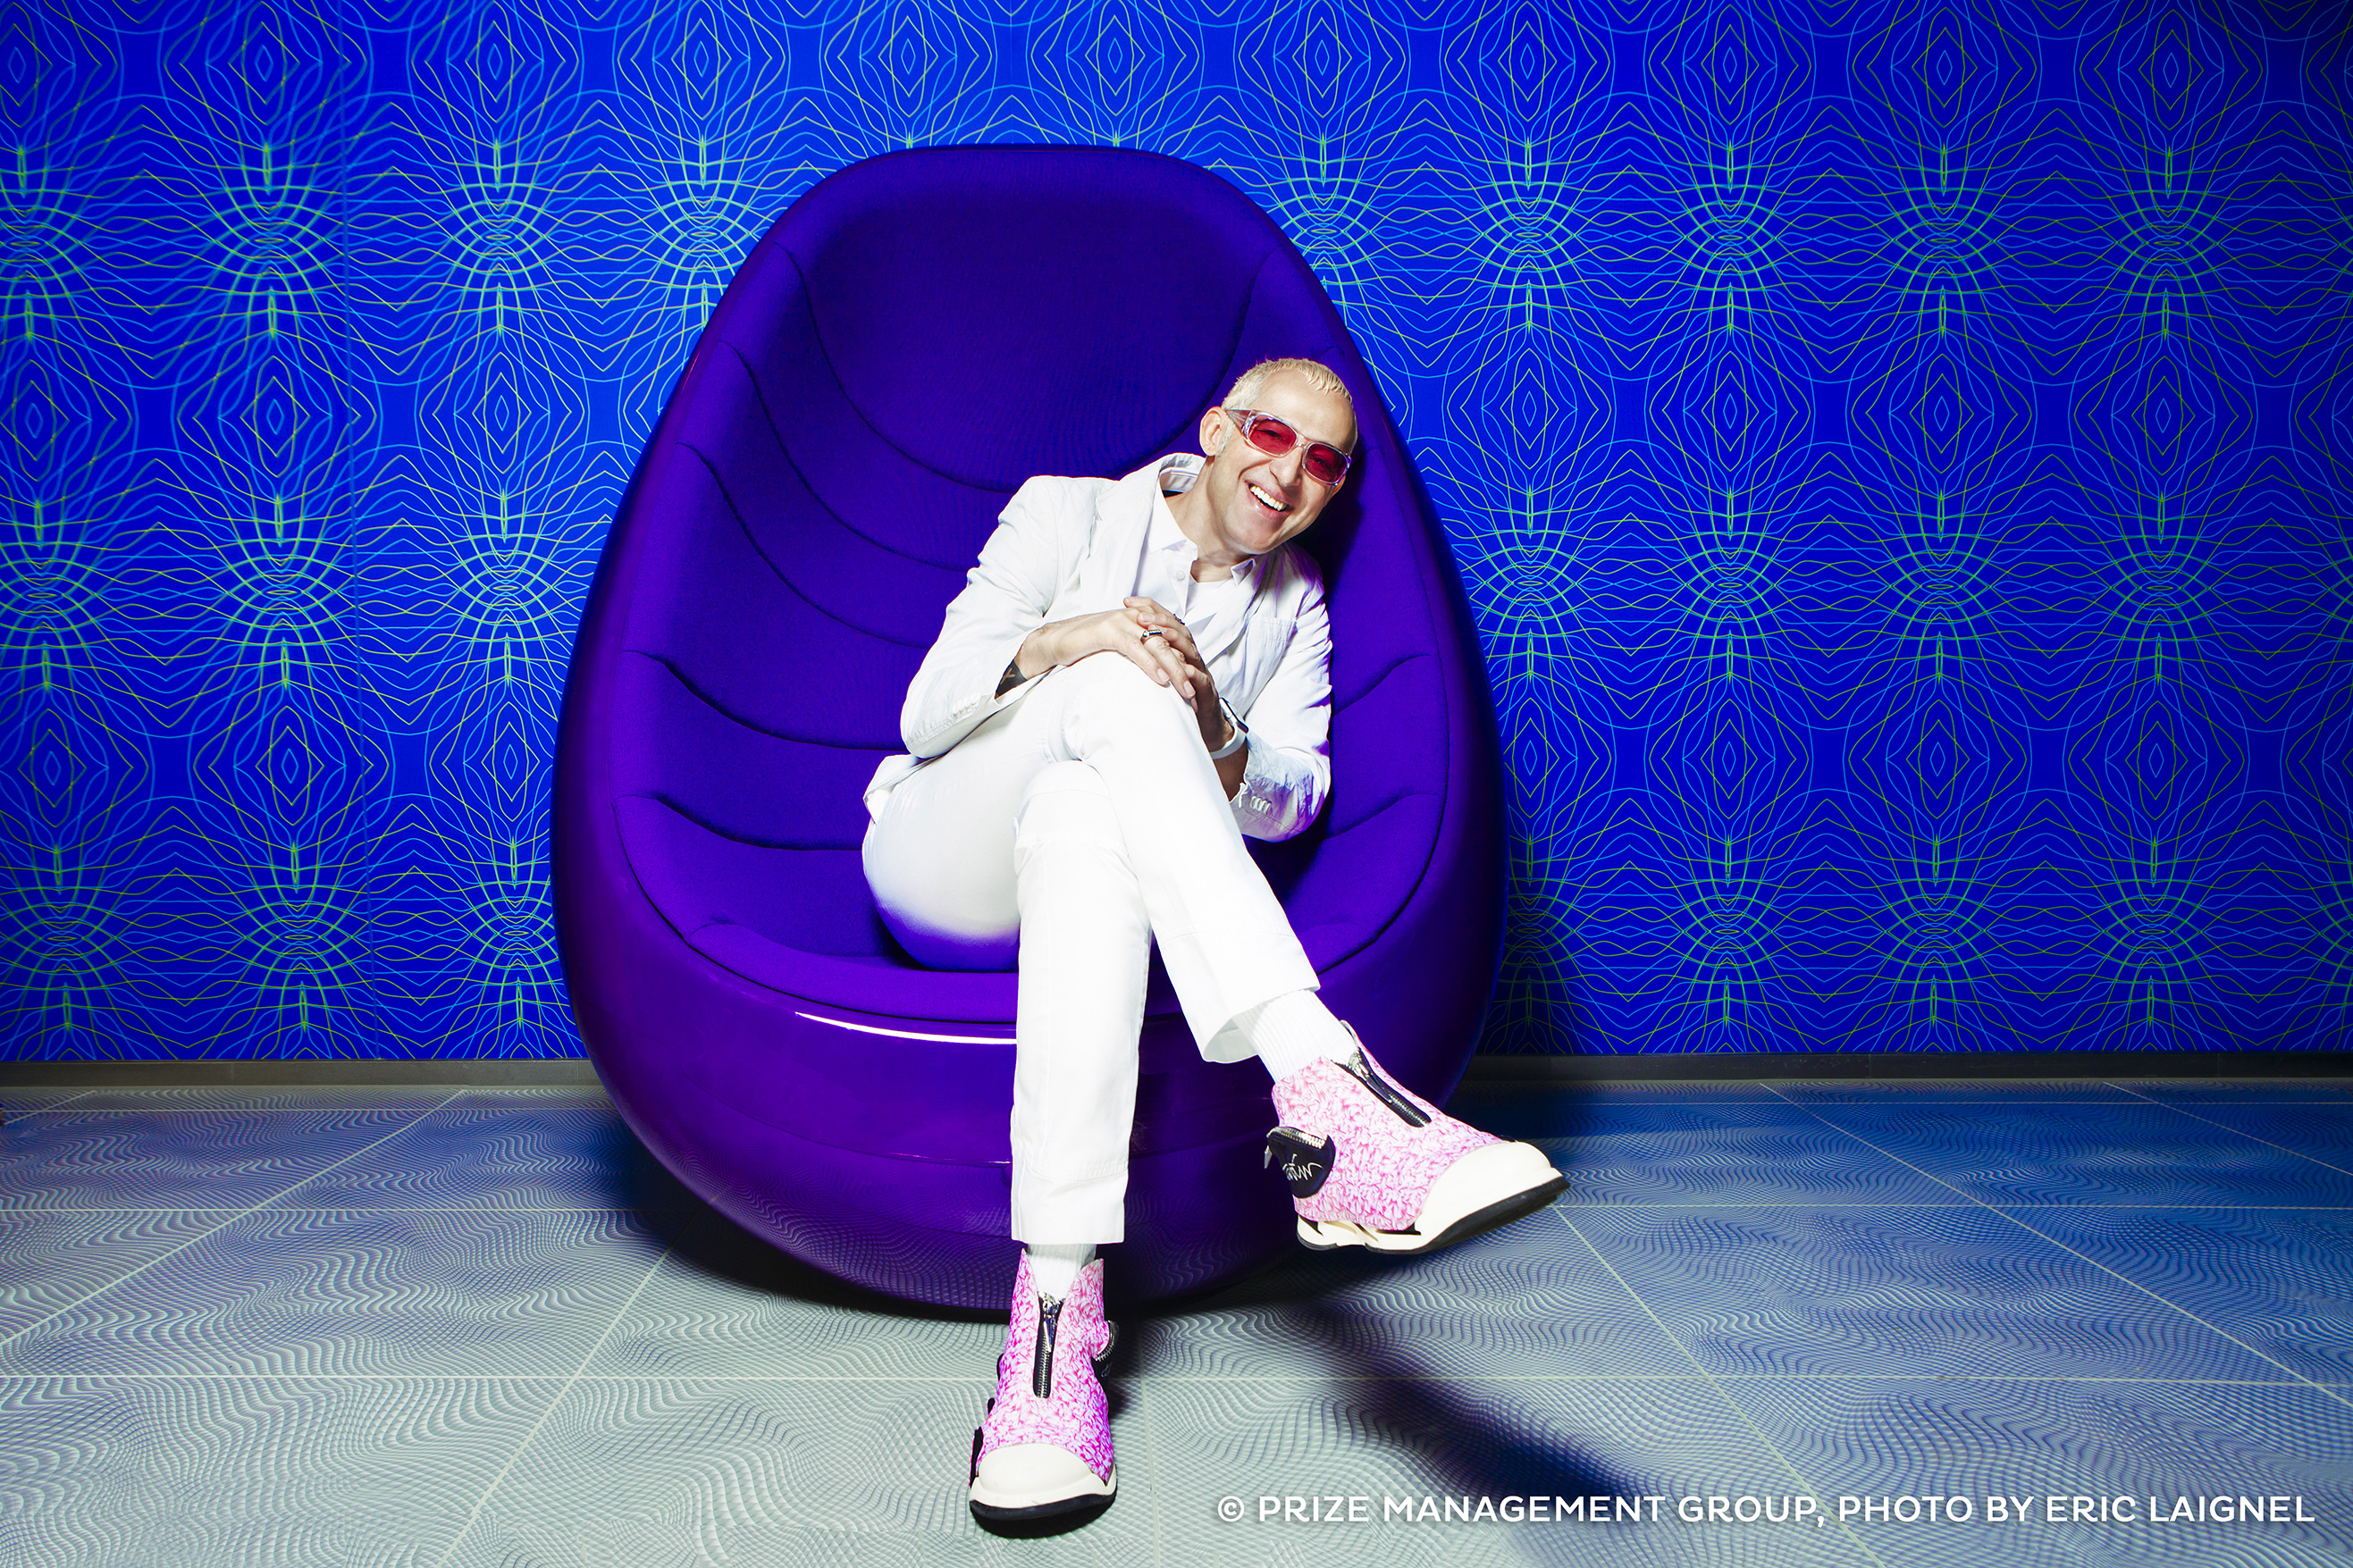 [Translate to English:] Karim Rashid